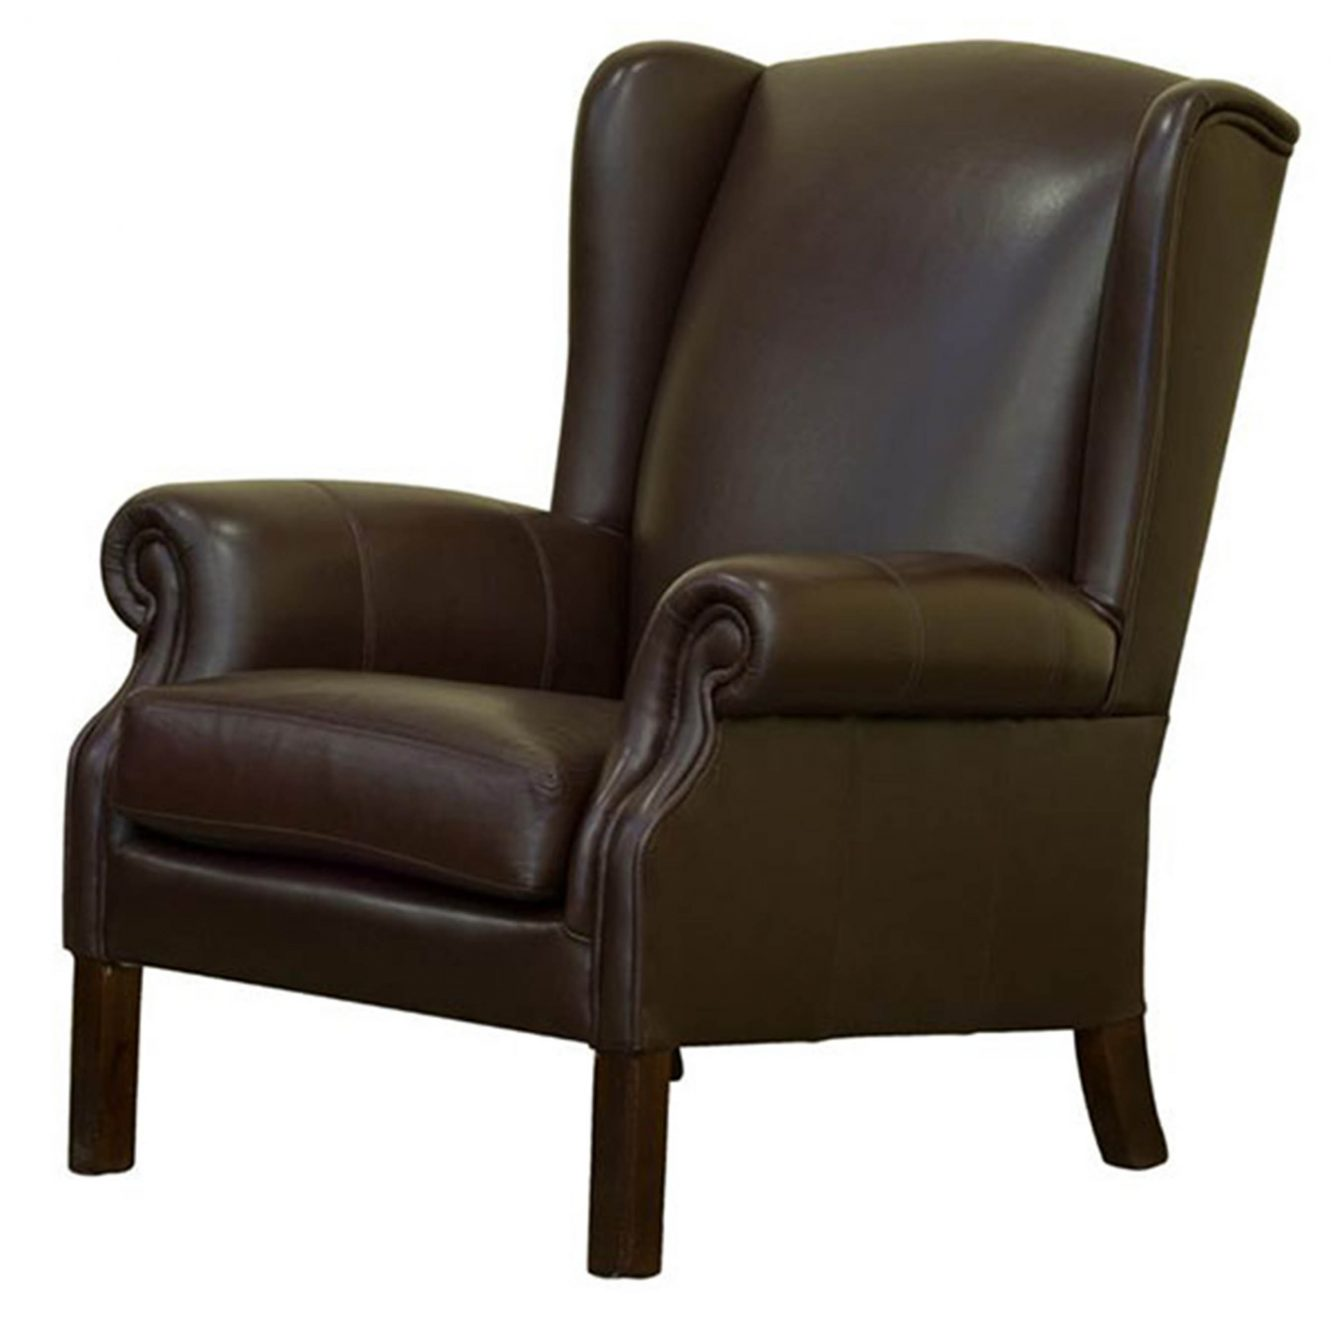 House Haven Occasional Chairs 0026 Classic Wingback